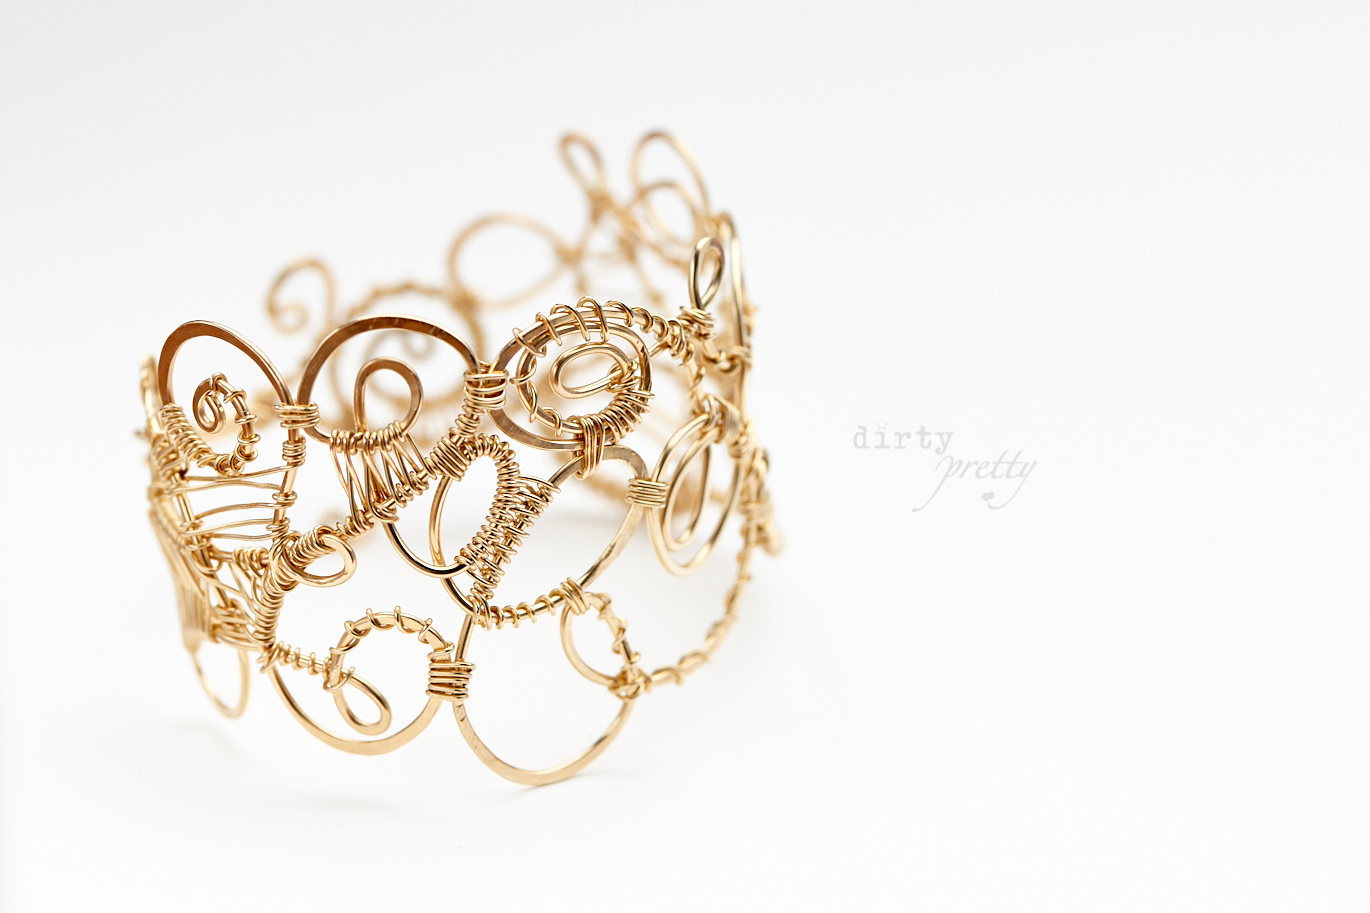 Gifts for Wife - Organized Chaos Gold Bracelet by dirtypretty artwear - Anniversary gifts for wife